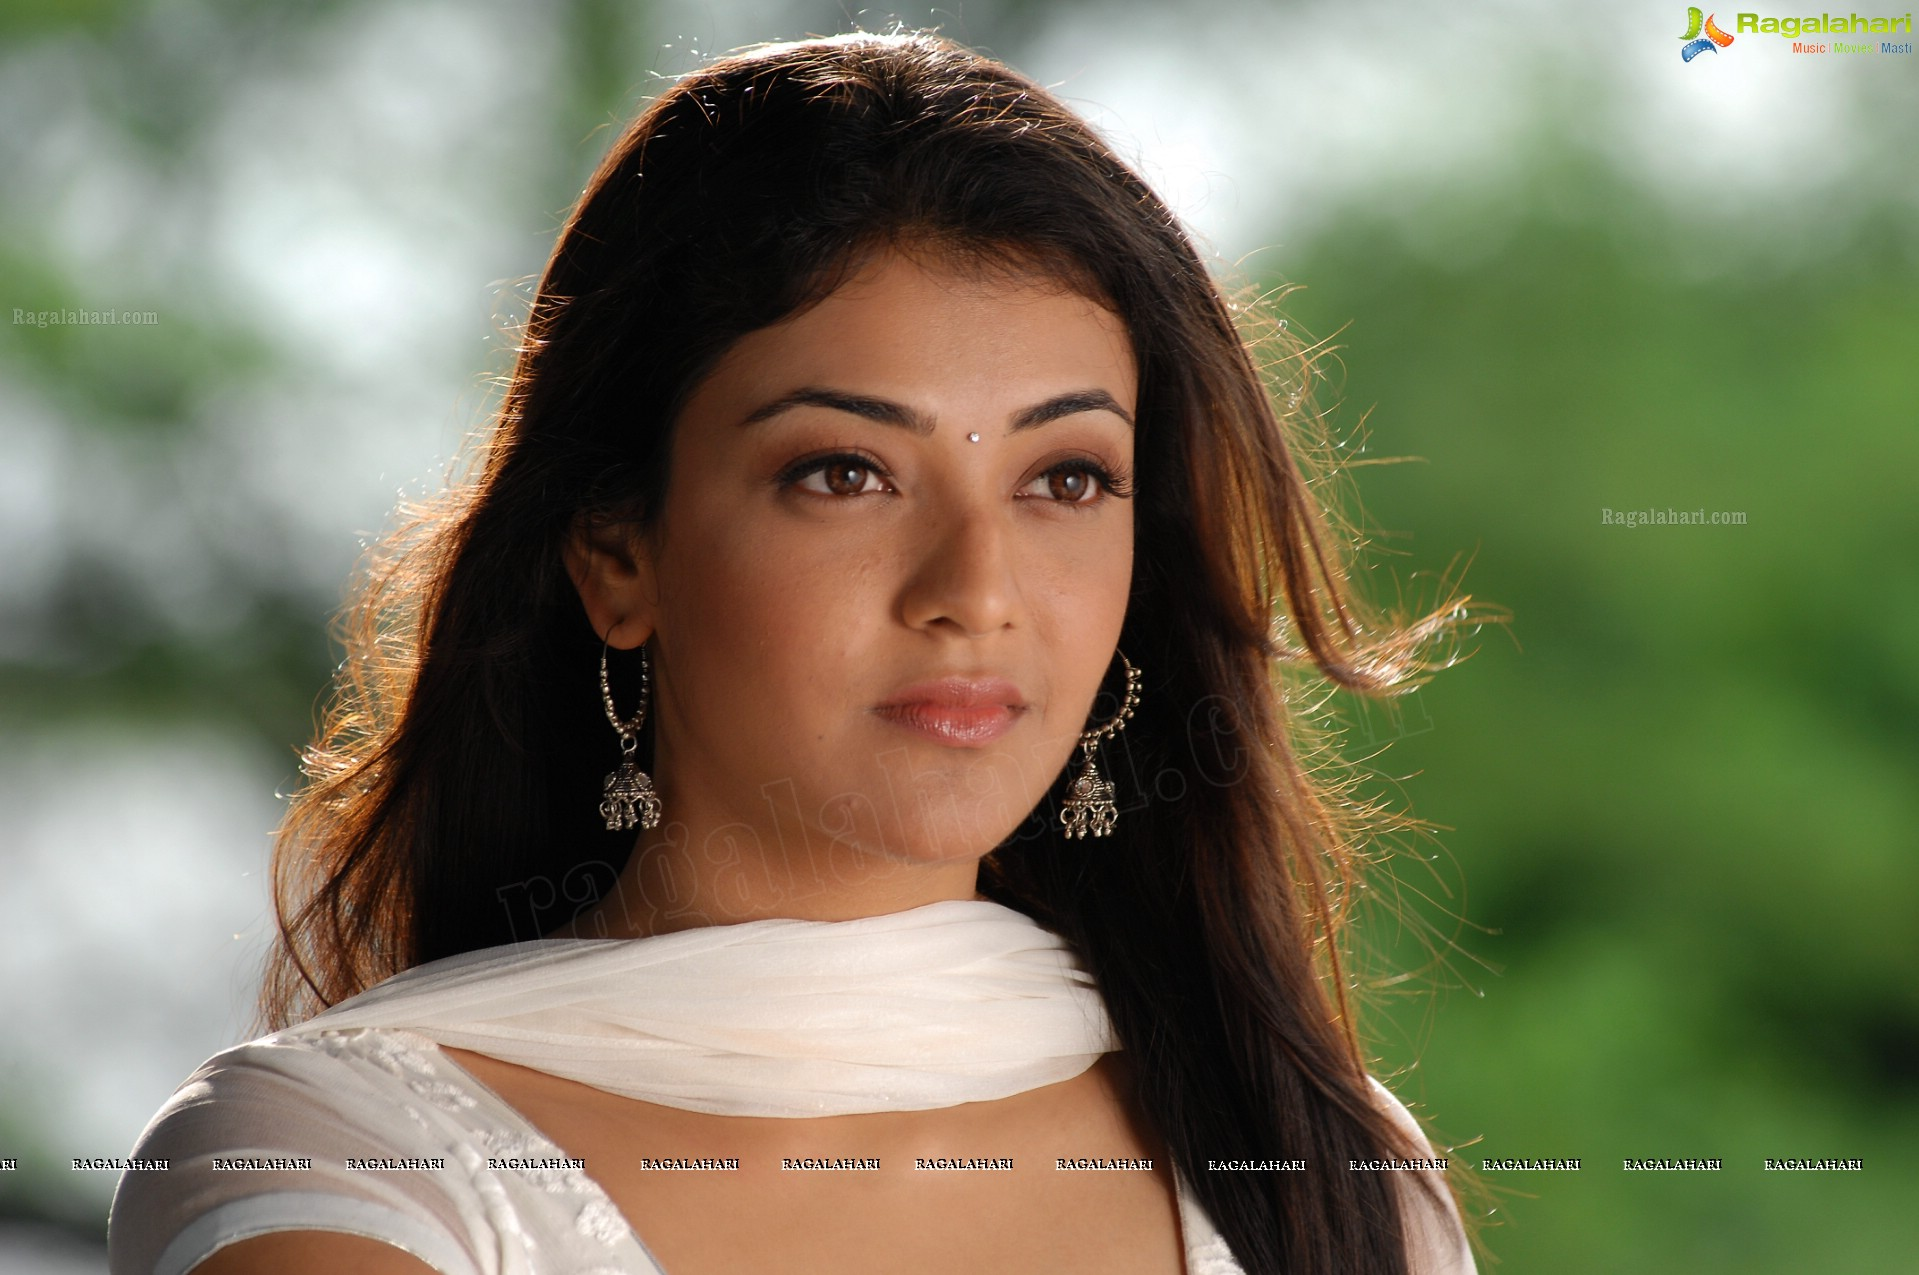 kajal agarwal (hd) image 14 | latest actress galleries,images